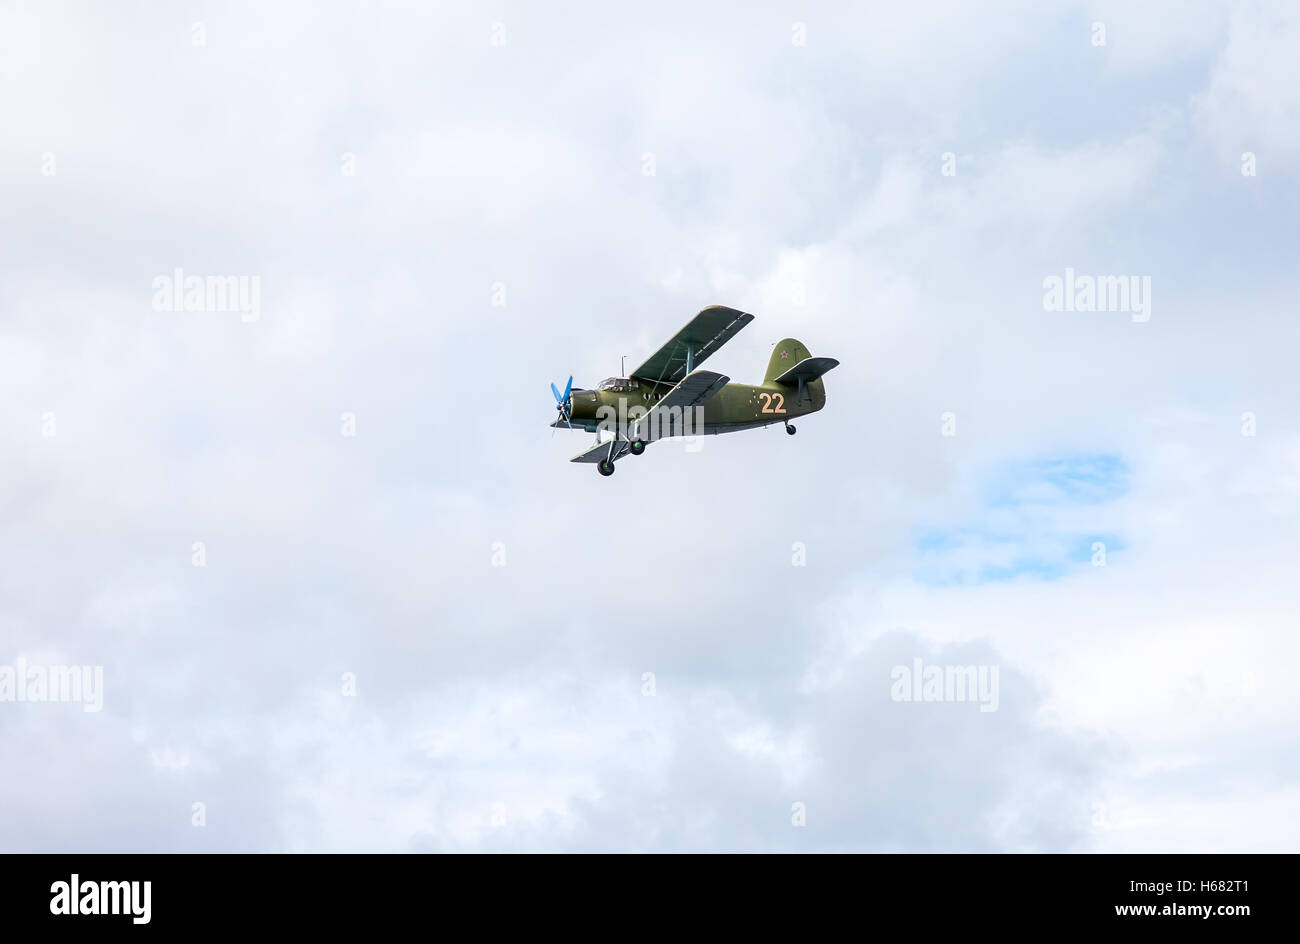 The Antonov An-2 is a Soviet mass-produced single-engine biplane in flying against cloudy sky - Stock Image